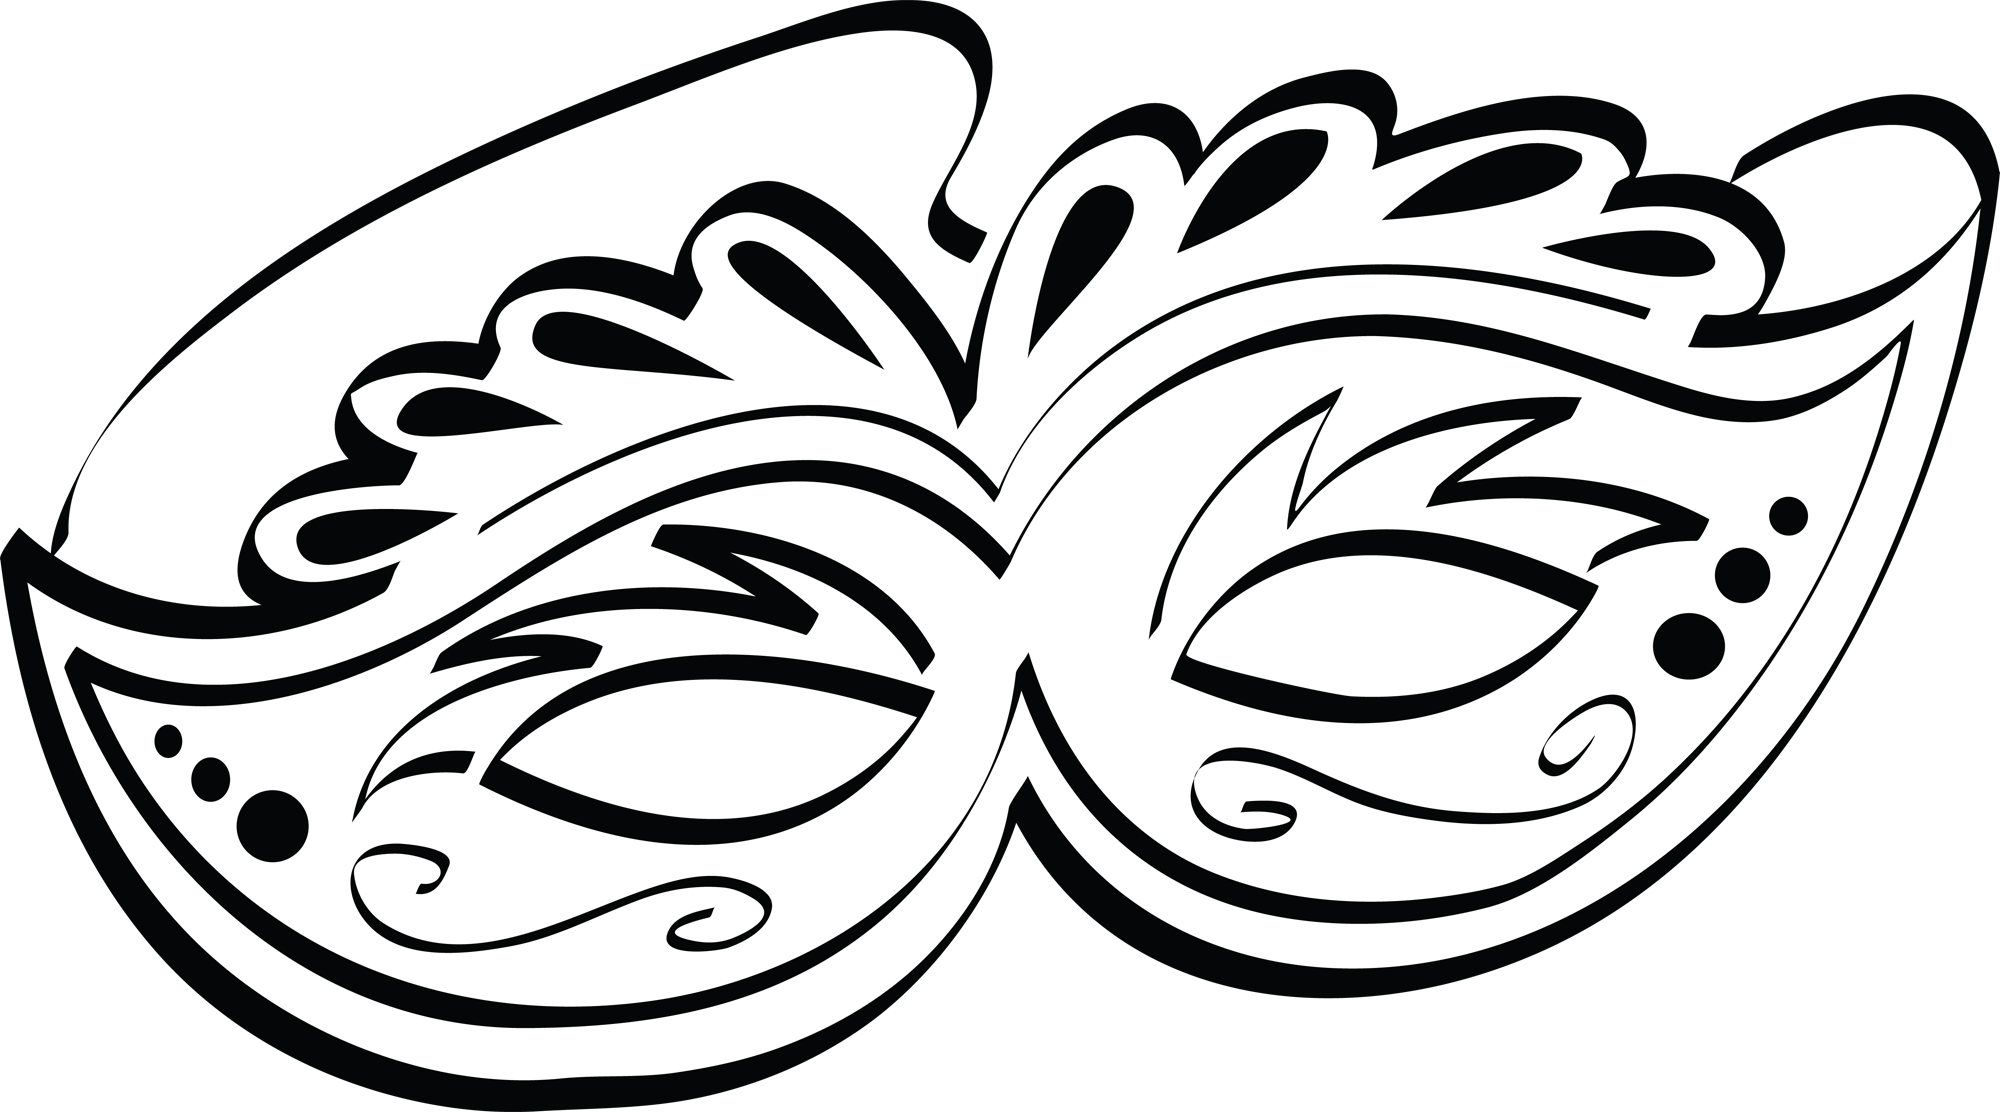 pix for u003e mardi gras masks clipart panda free clipart images rh clipartpanda com mardi gras mask clipart black and white mardi gras mask clipart free